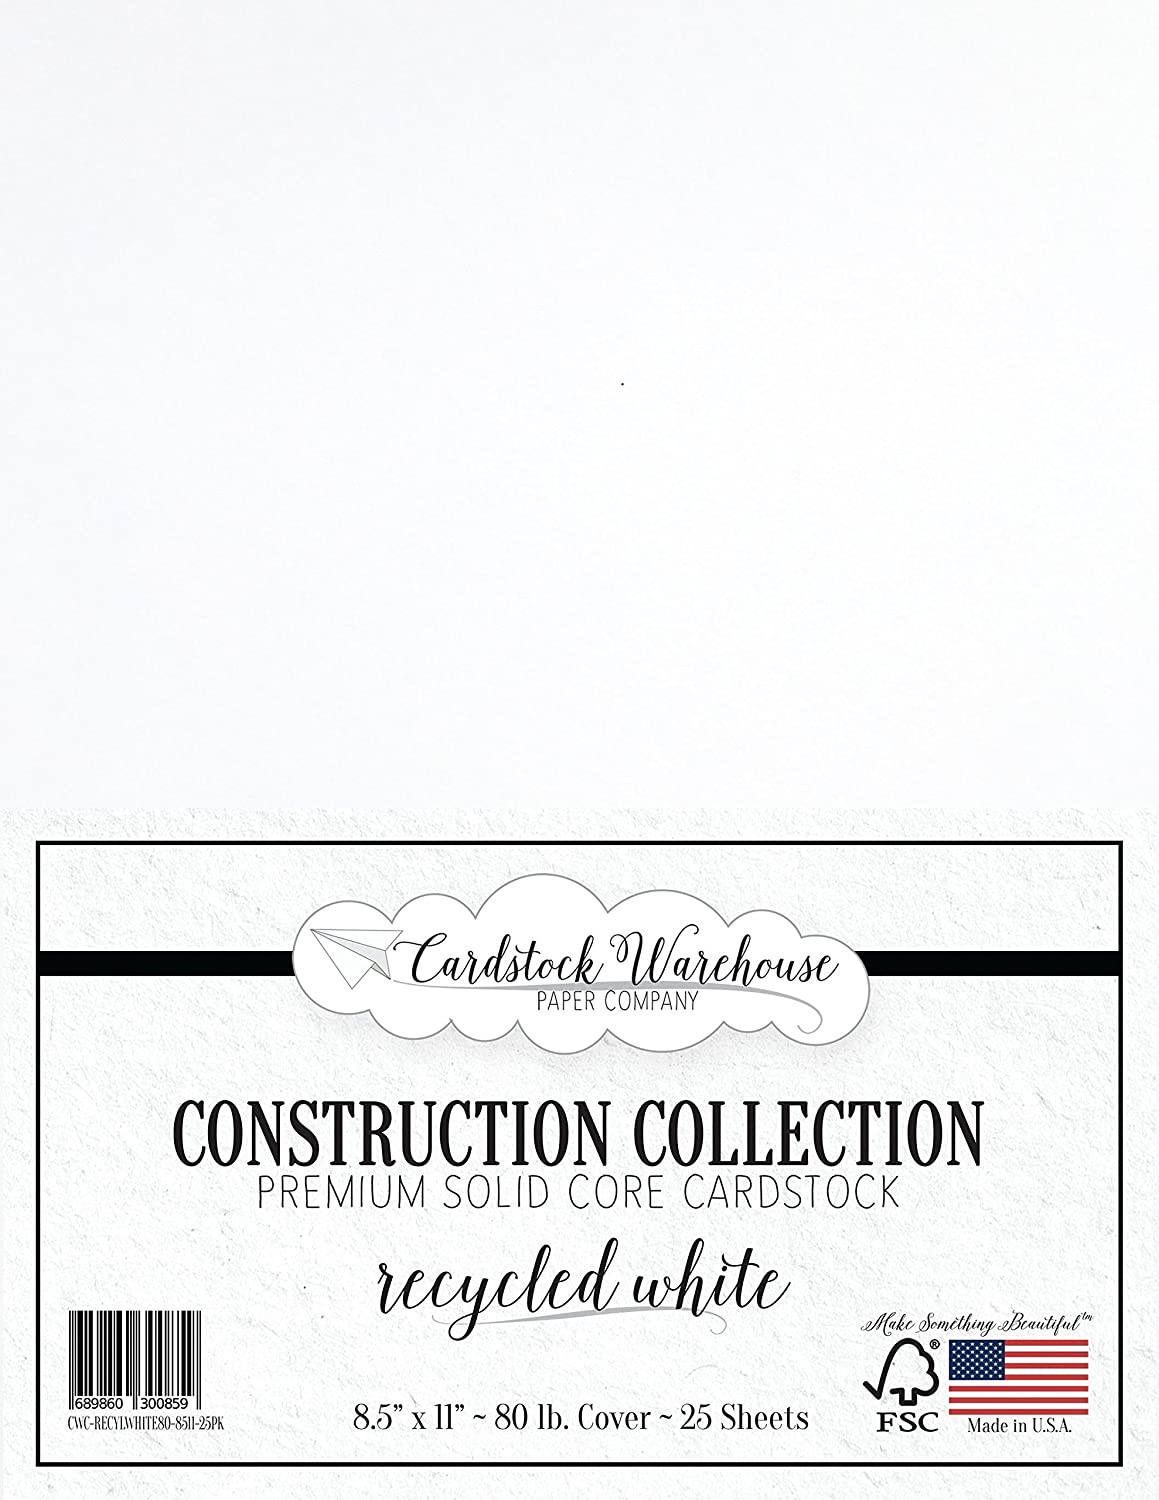 Recycled White Cardstock Paper 8.5 x 11 inch Premium 80 LB 25 Sheets from Cardstock Warehouse Cover